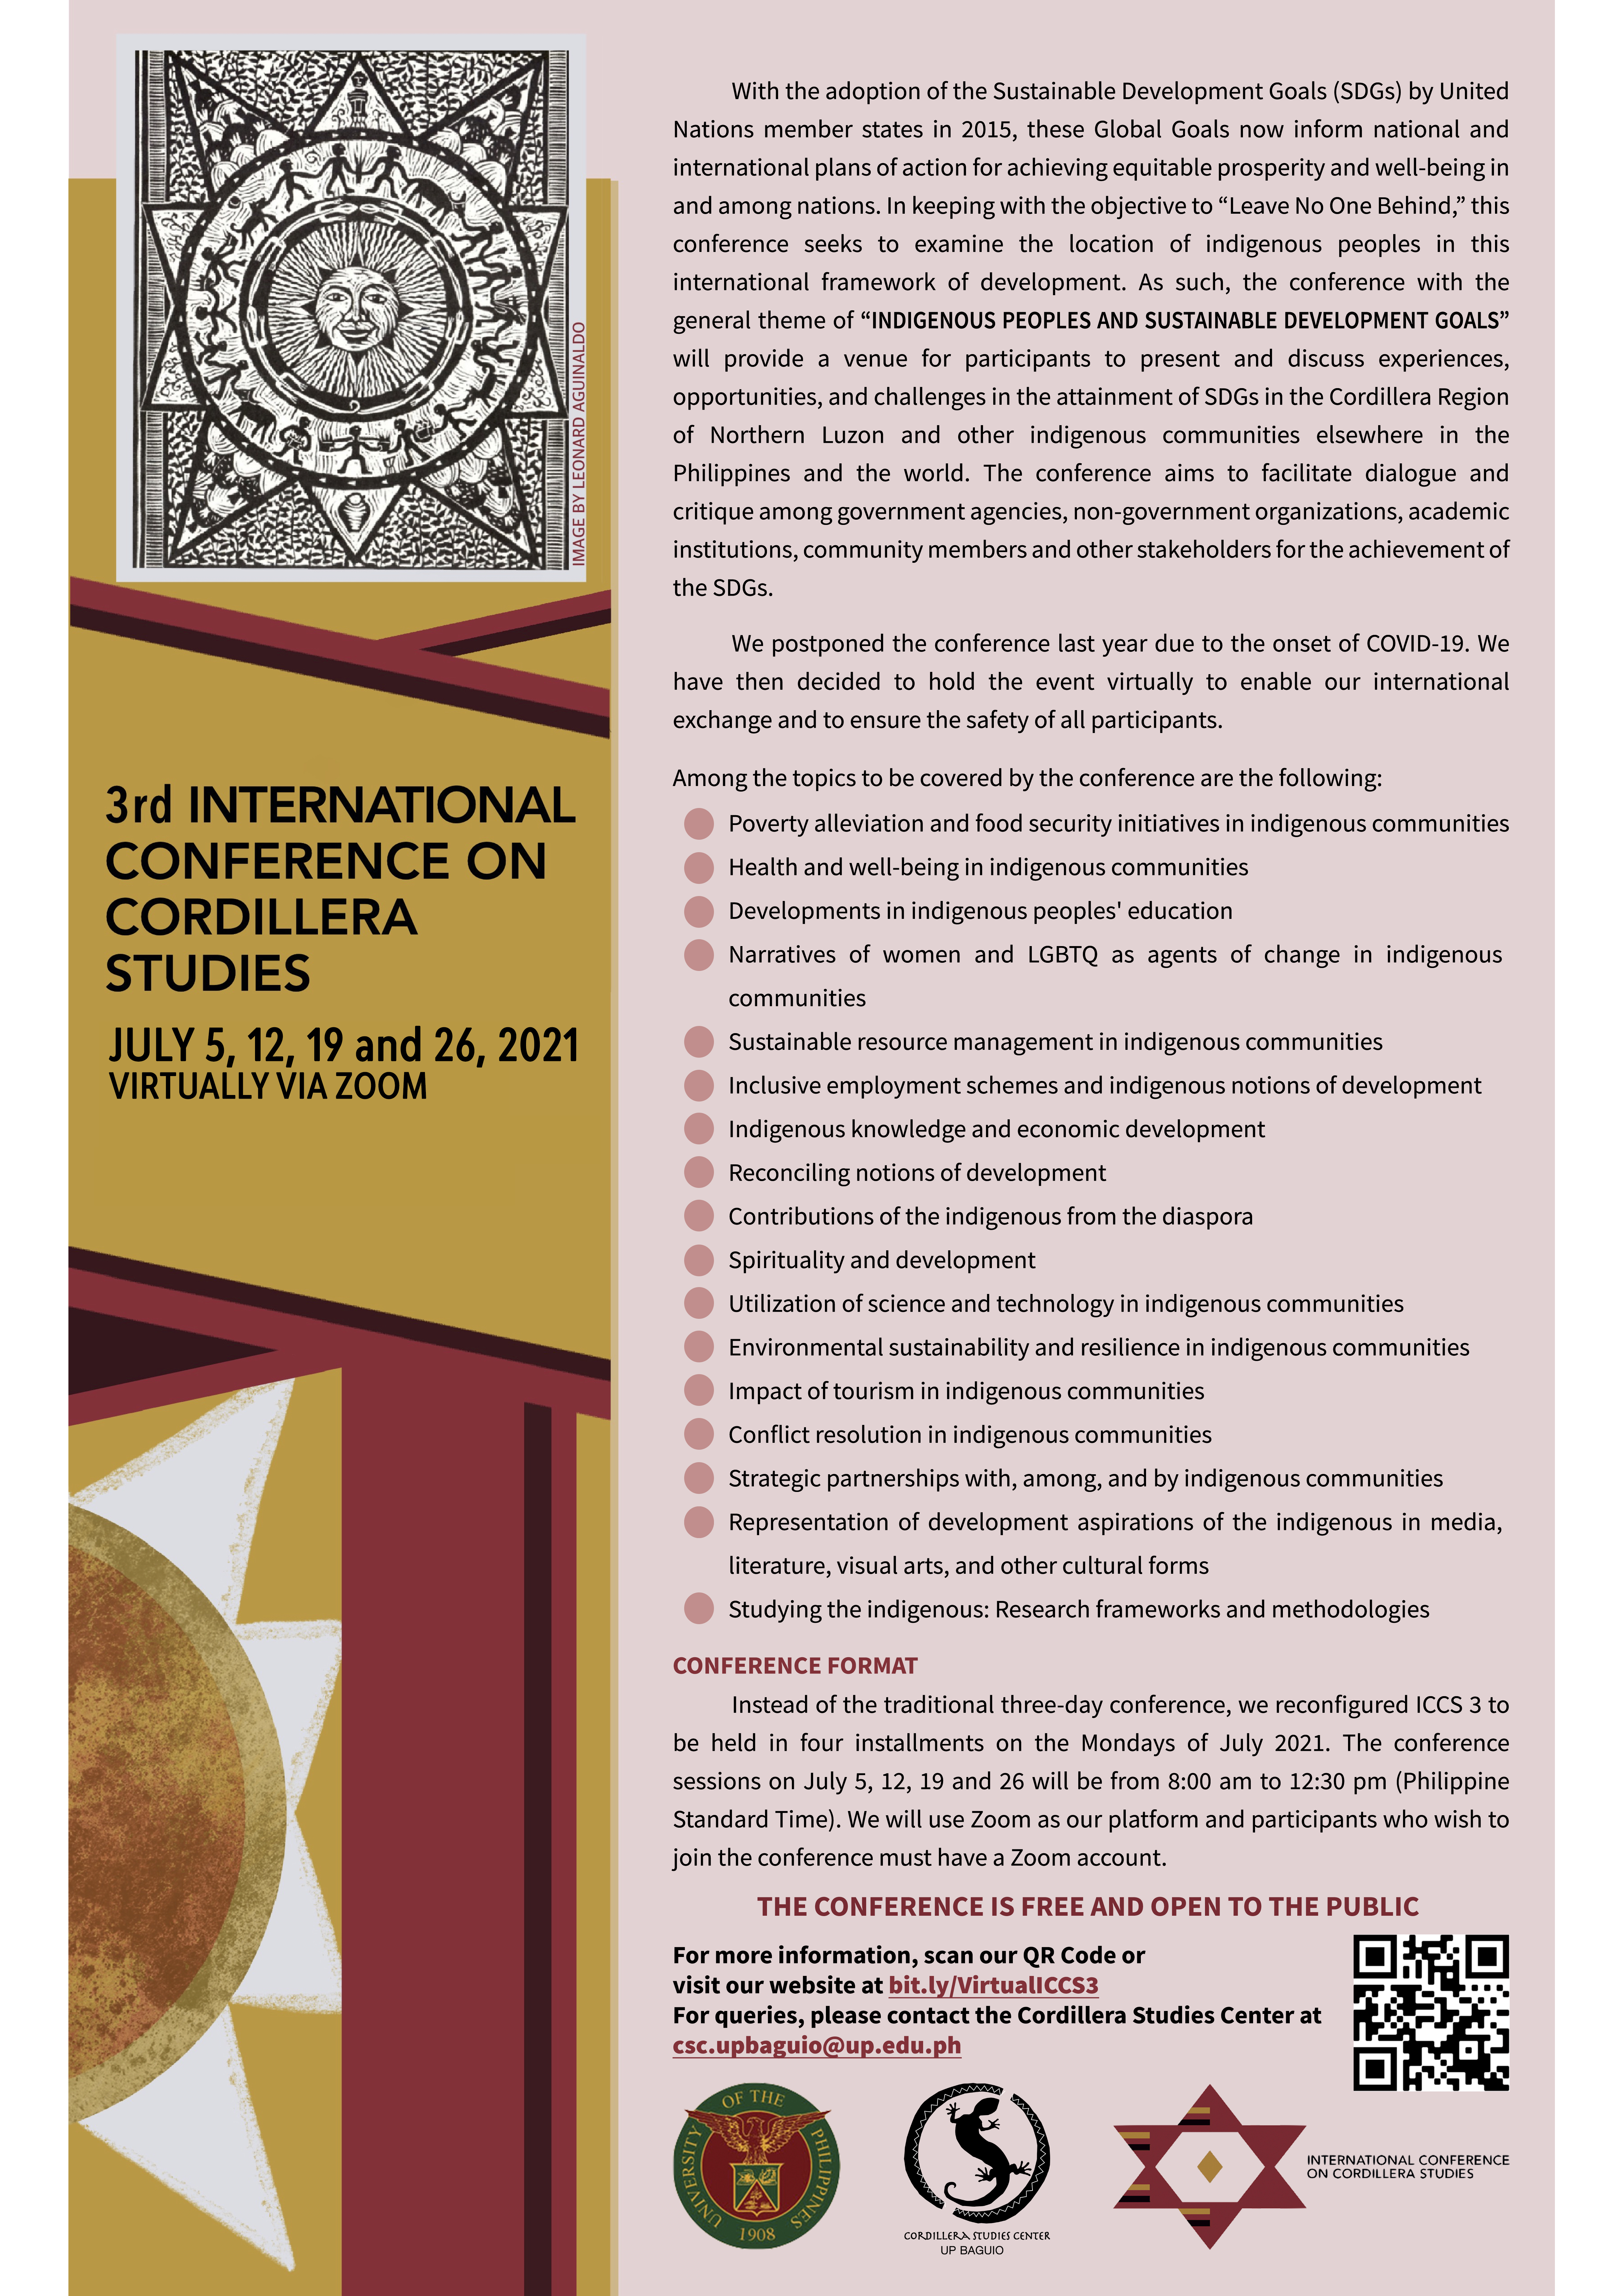 3rd International Conference on Cordillera Studies